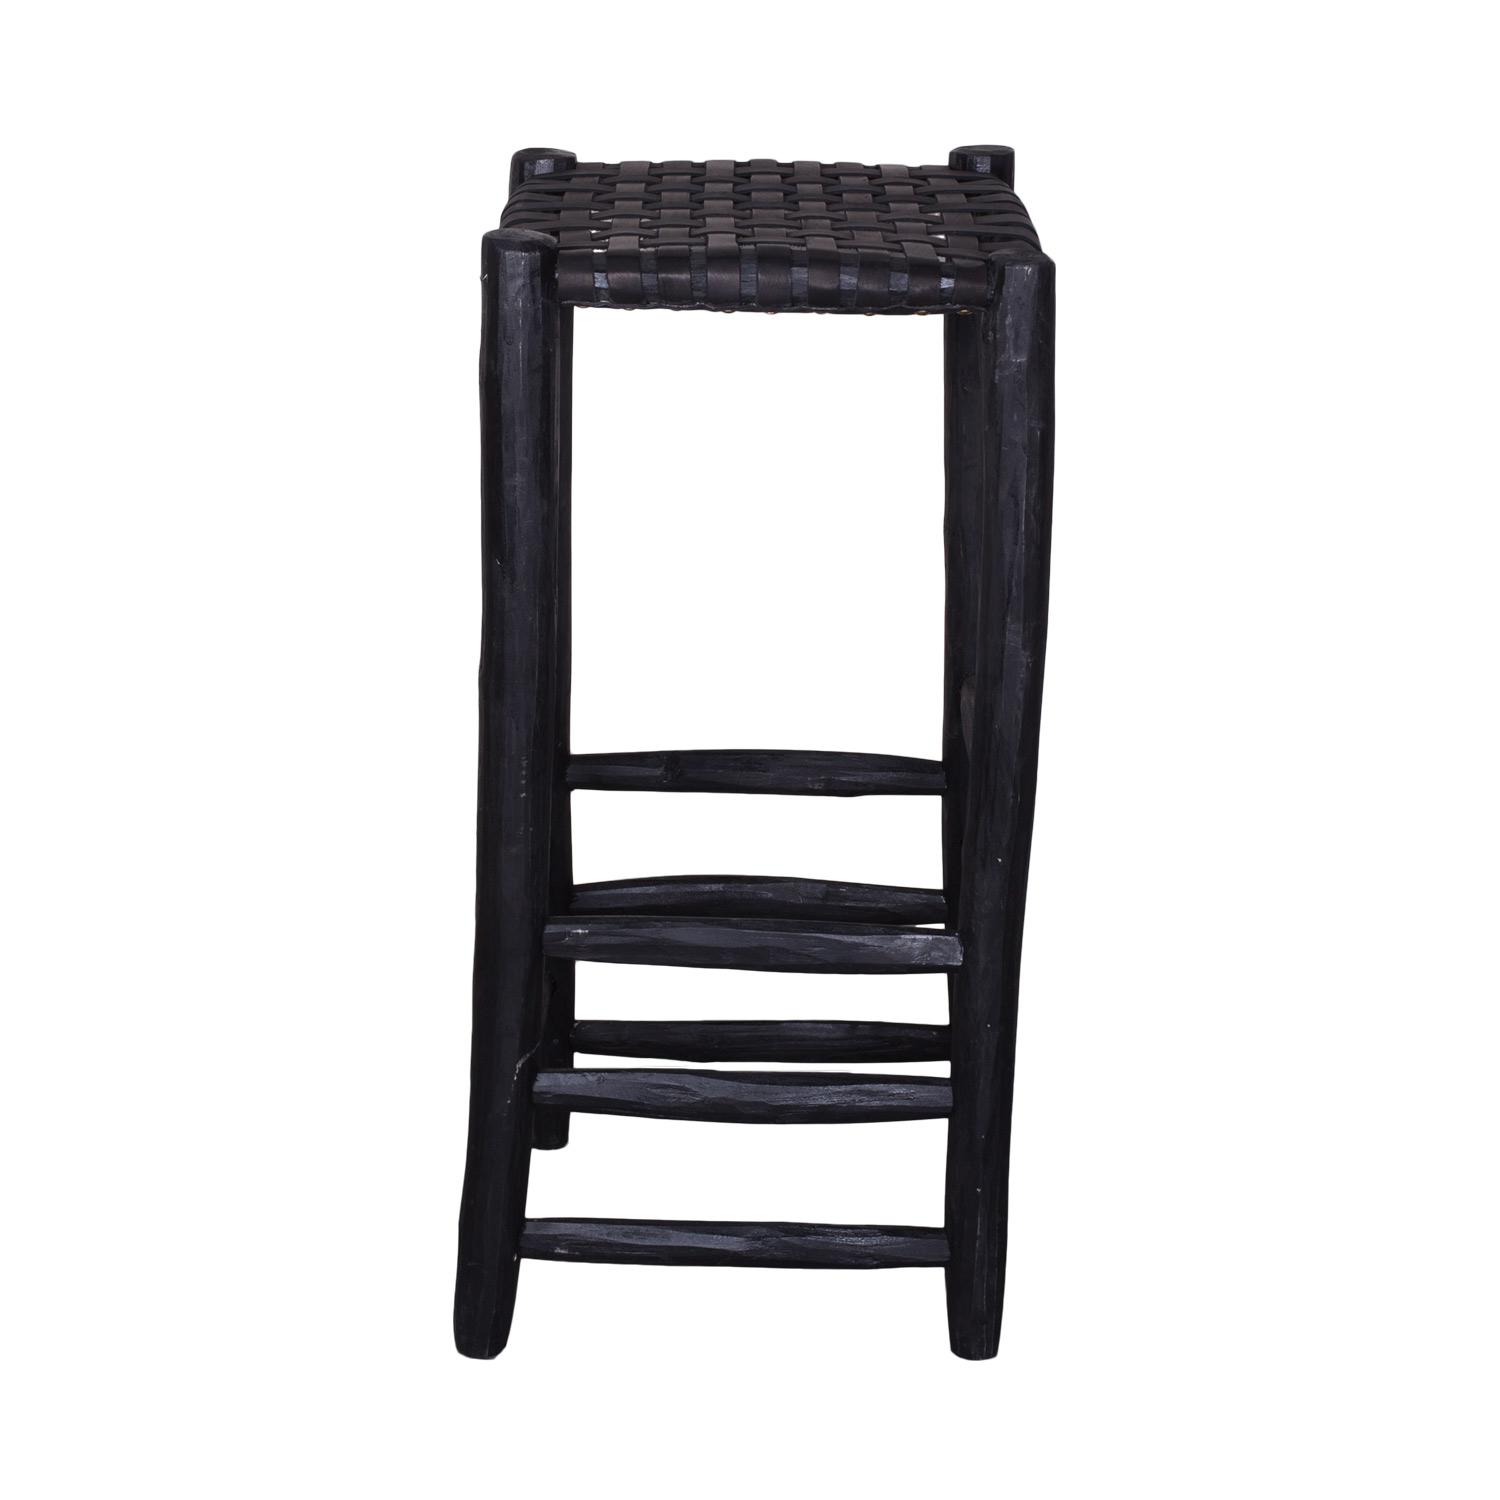 Astonishing Bar Stool Black Black Leather Seating Household Hardware Pabps2019 Chair Design Images Pabps2019Com